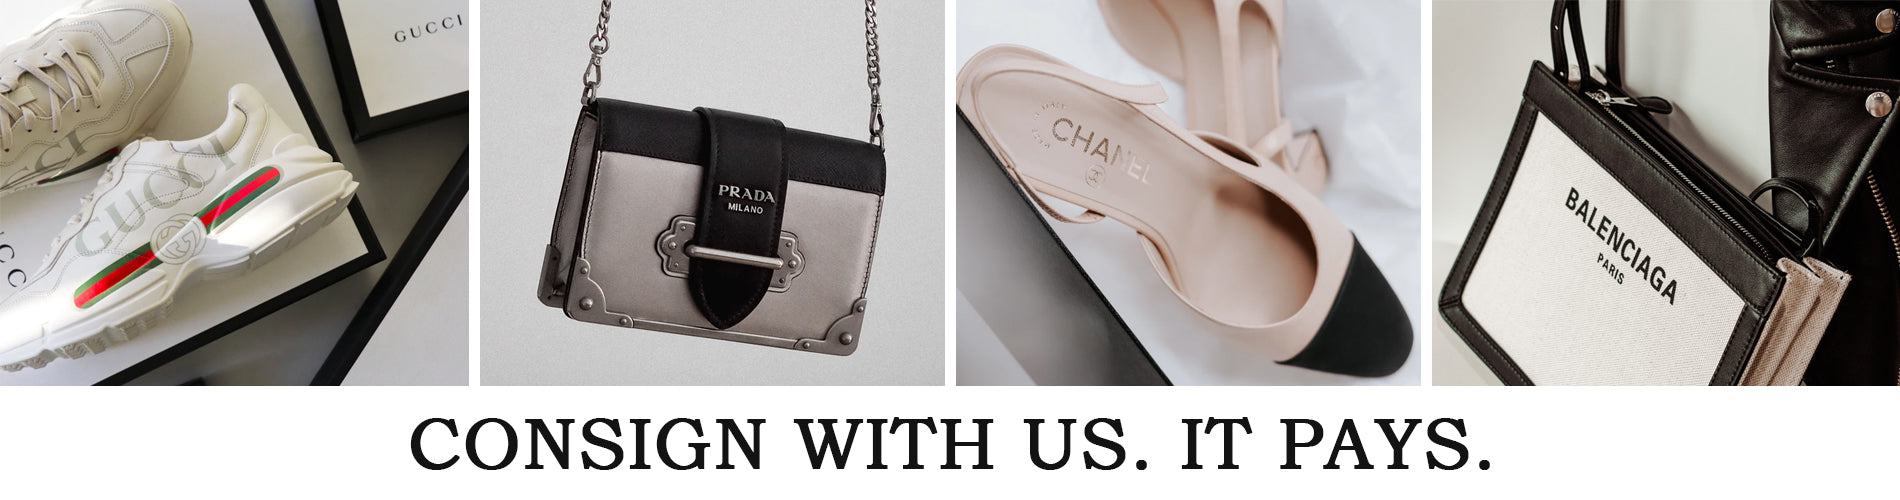 Consign with us. It pays.